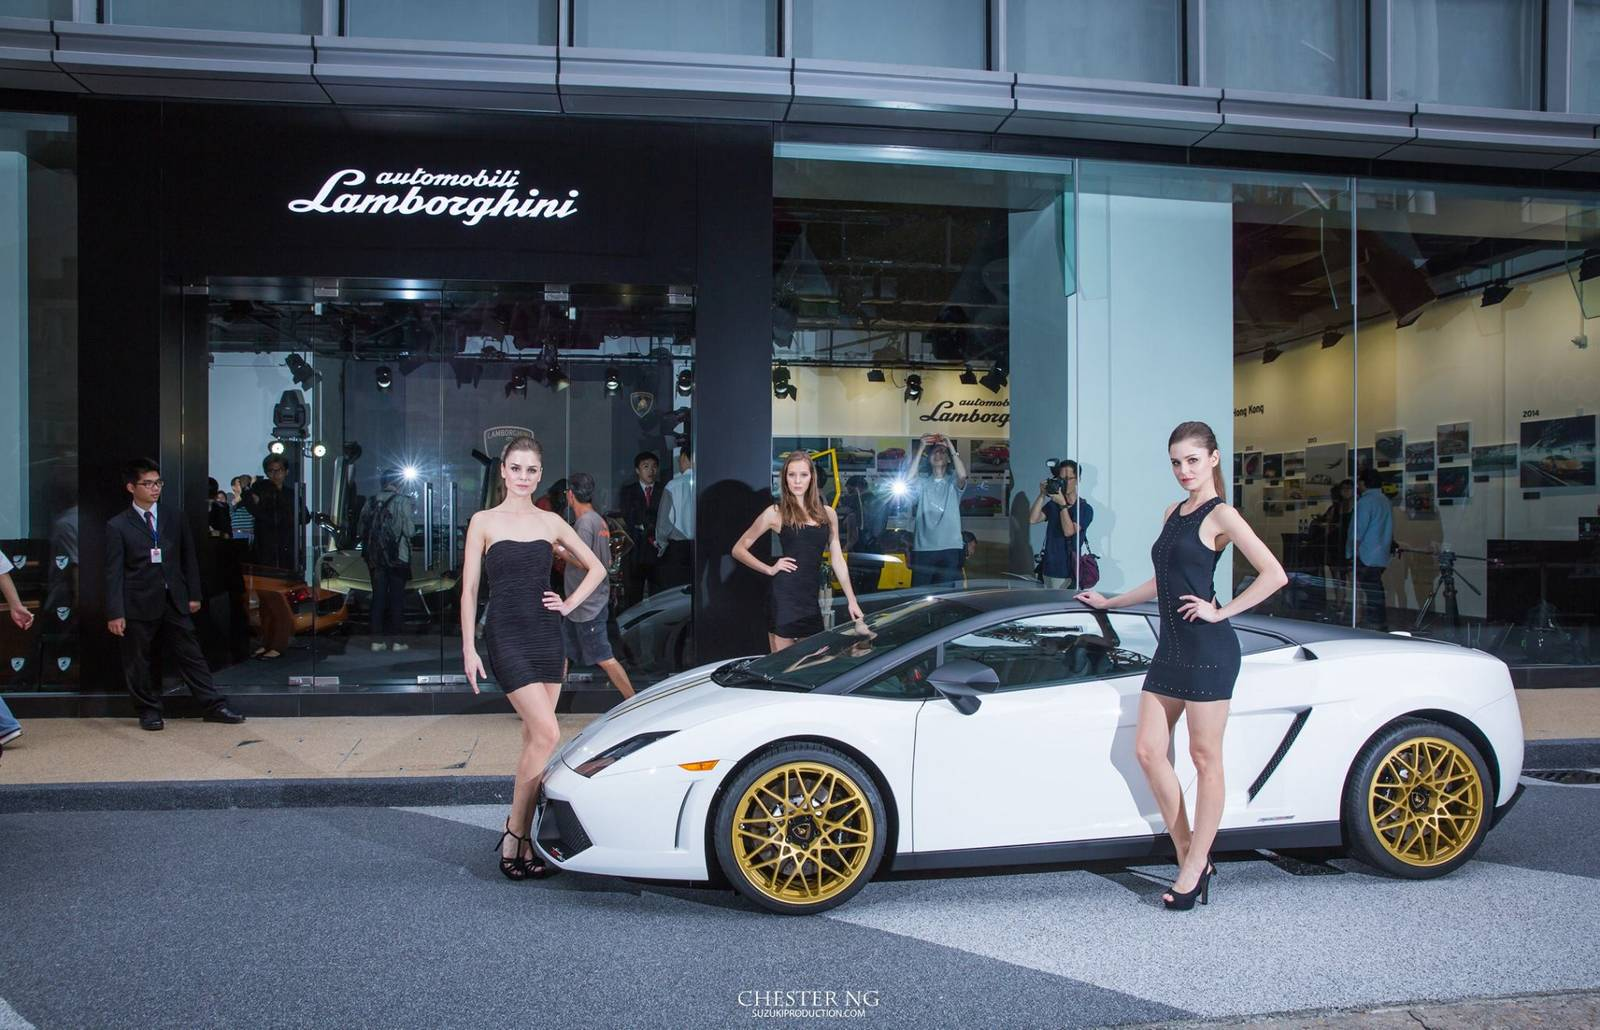 lamborghini hong kong opens first pop up museum in asia pacific. Black Bedroom Furniture Sets. Home Design Ideas